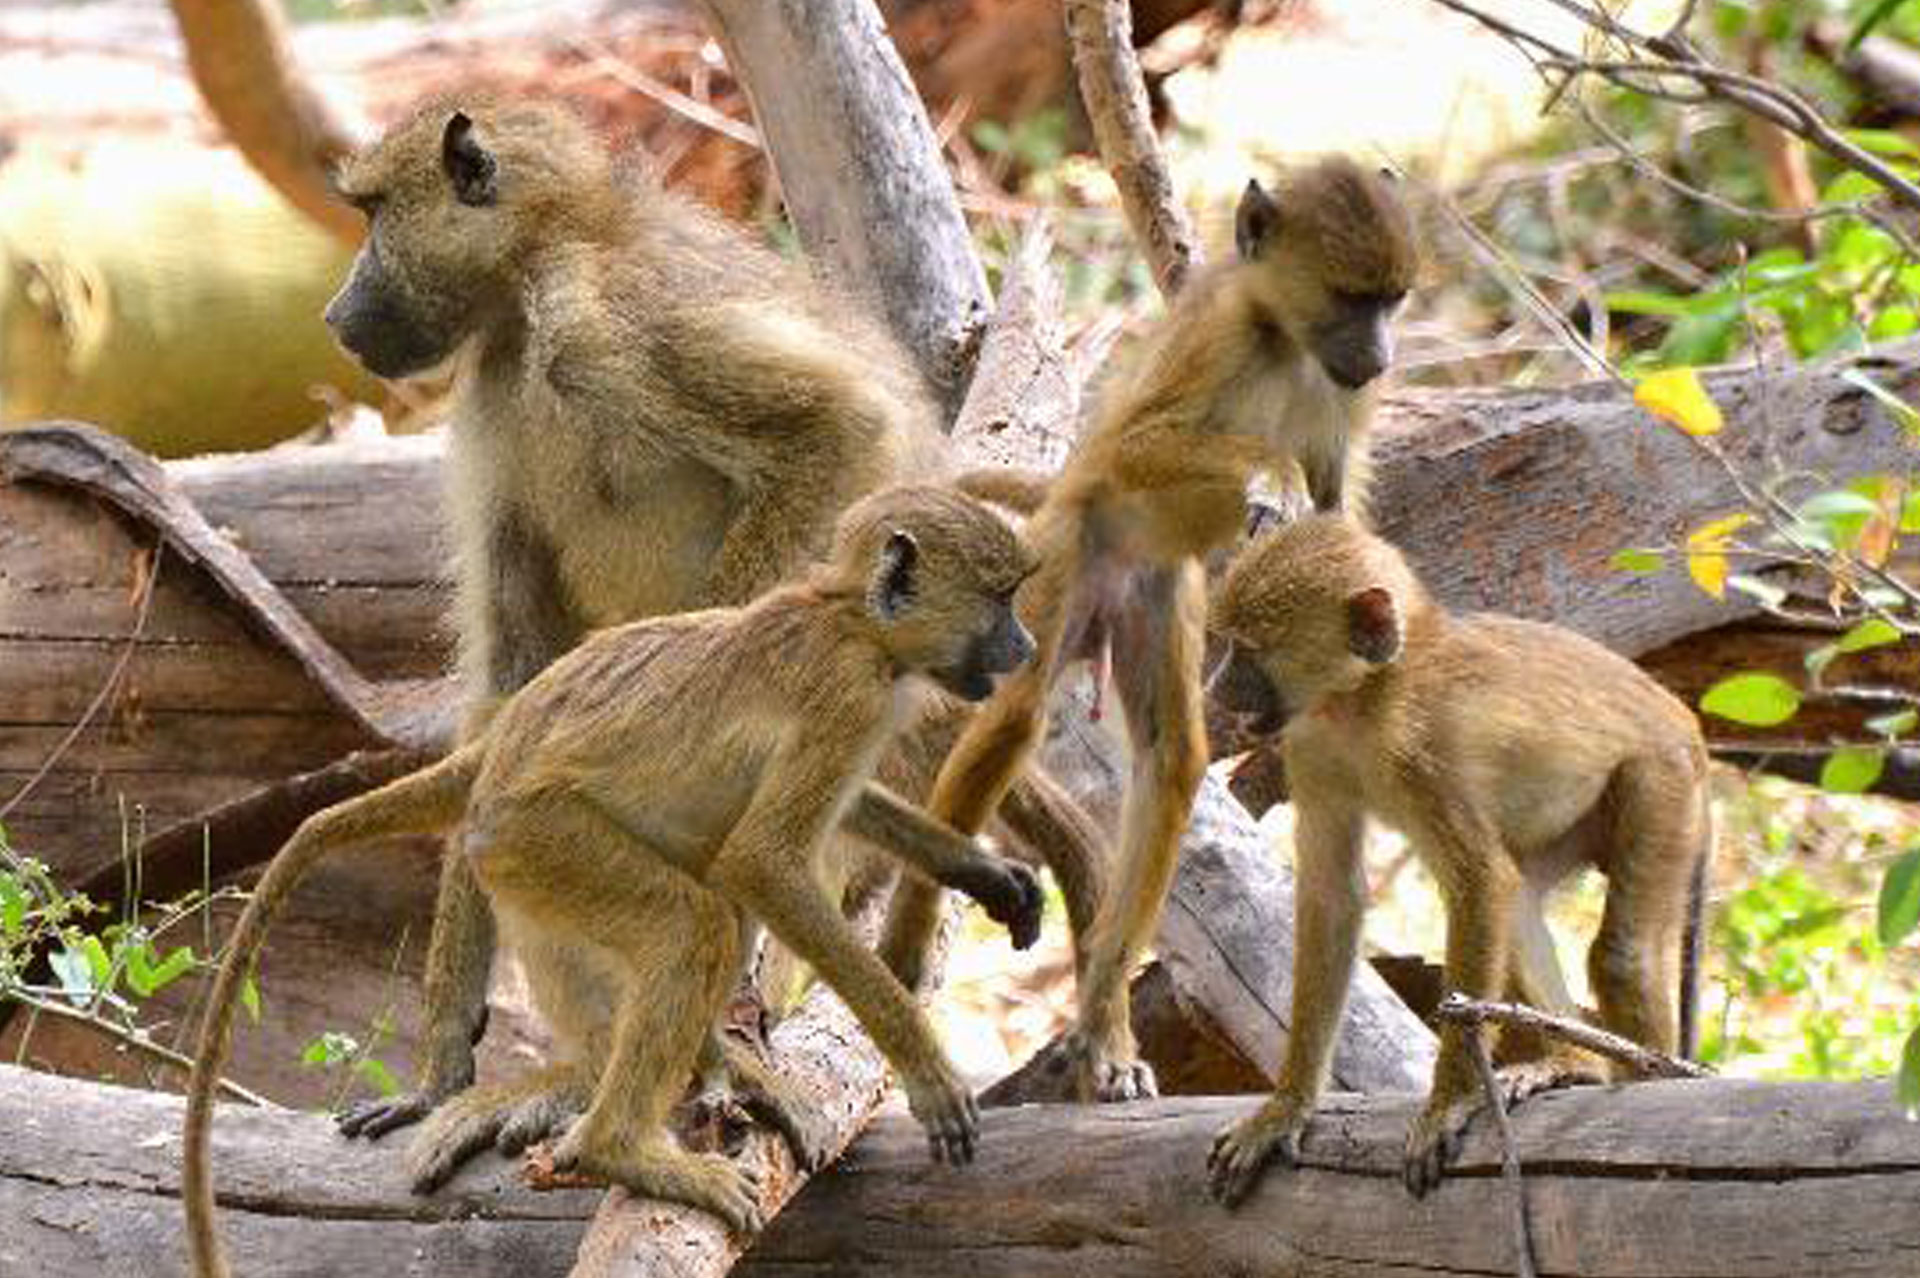 Diani_travel_center_tours_and_safaris_diani_tours_and_safaris_3_days_tsavo_east_and_west_olive_at_mzima_springs